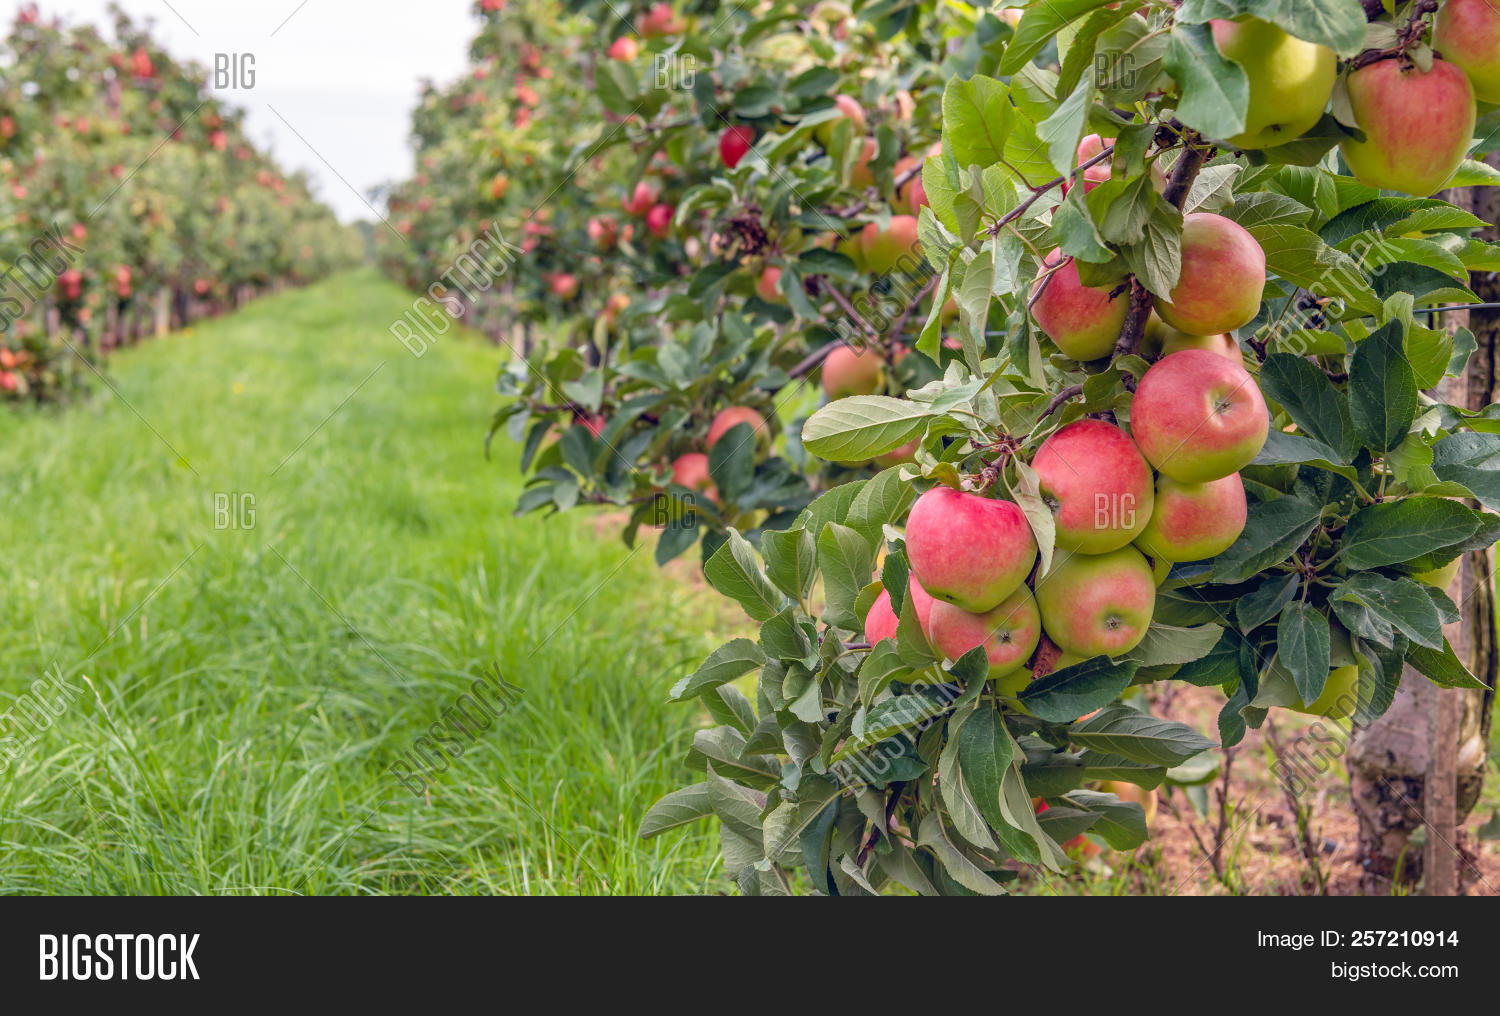 Espaliered Fruit Trees Image Photo Free Trial Bigstock